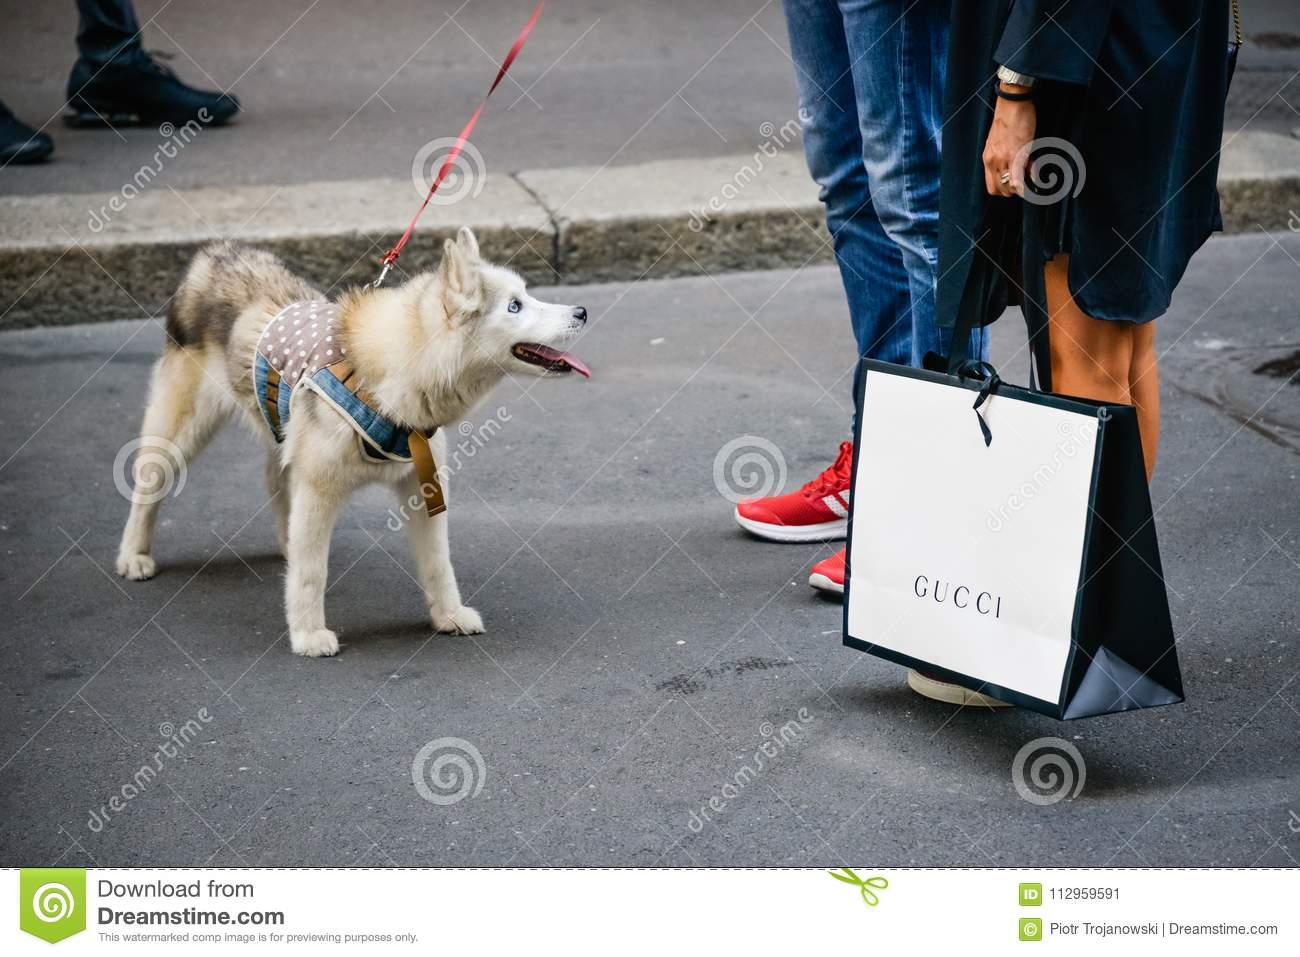 04c3595bece Milan, Italy - September 24, 2017: Tourist with a Gucci shopping bag during  Fashion week.. New Collection